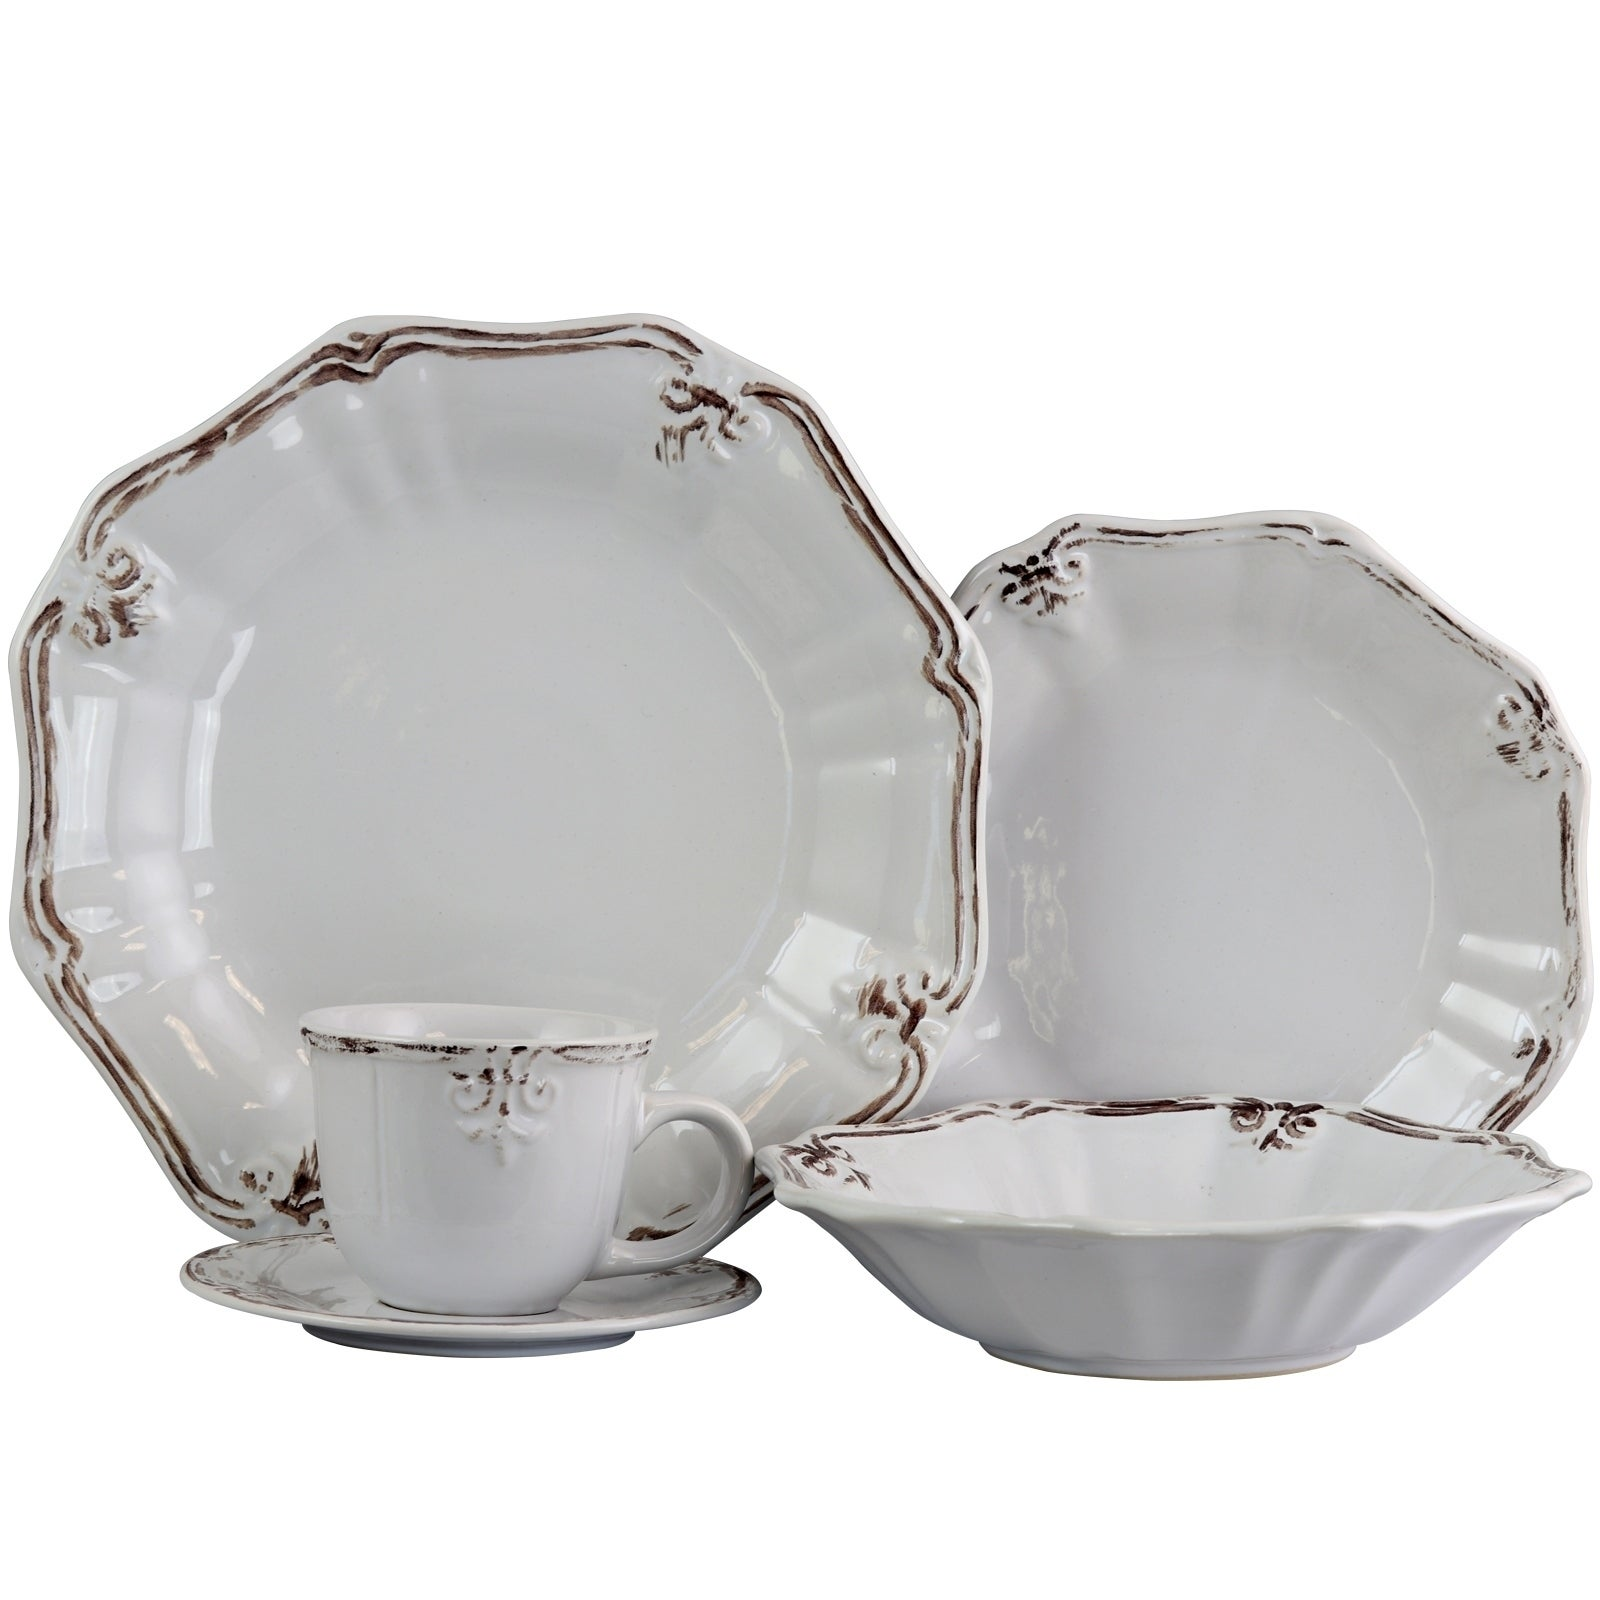 Elama Fleur De Lys 20 Piece Dinnerware Set in White - Free Shipping Today - Overstock.com - 24264178  sc 1 st  Overstock.com & Elama Fleur De Lys 20 Piece Dinnerware Set in White - Free Shipping ...